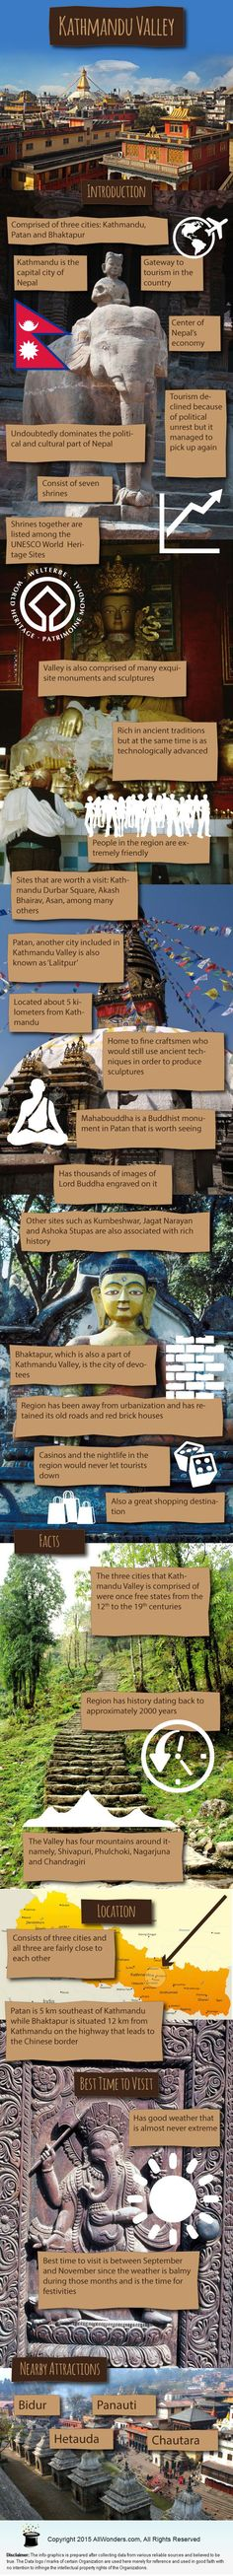 Kathmandu Valley infographic - Infographic showing Facts and Information about Kathmandu Valley in Nepal. Also find out about it's Location, Best time to visit, Nearby attractions & more.